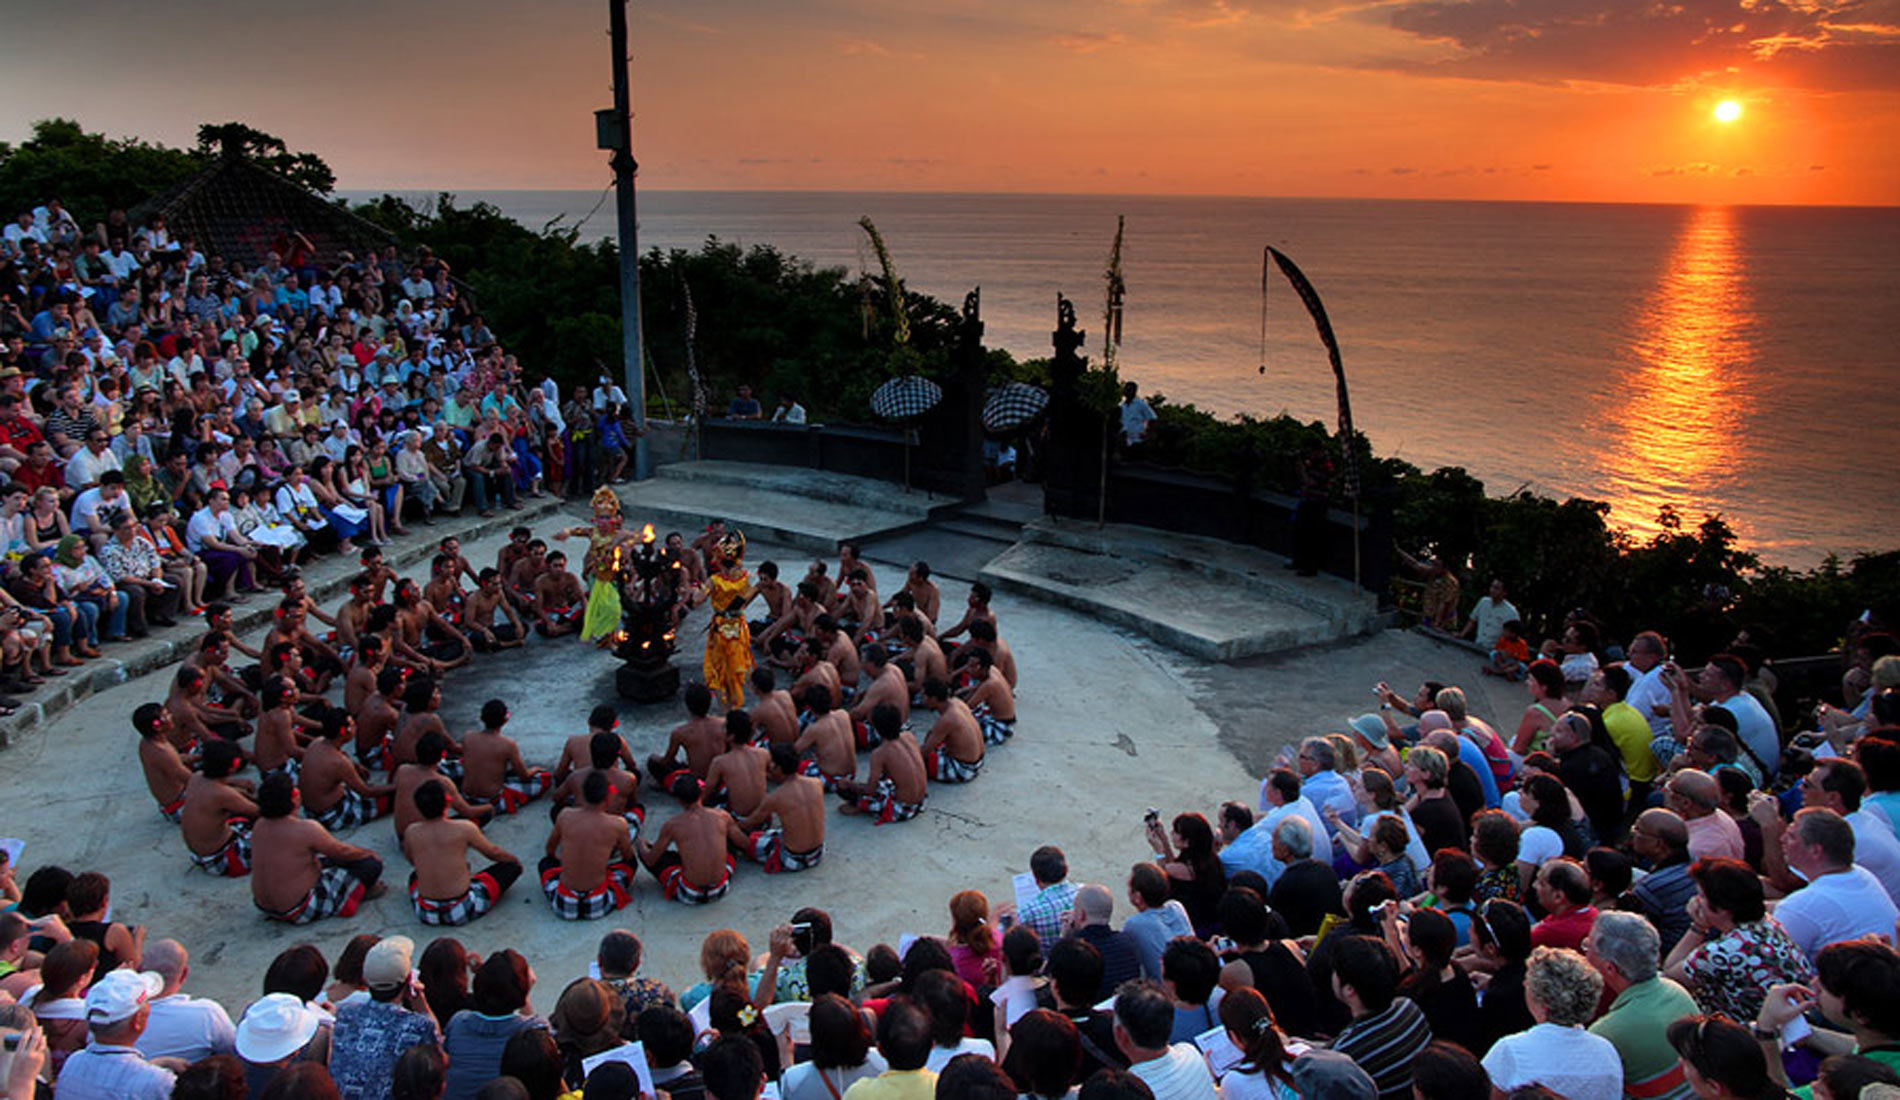 Kecak Dence Uluwatu Bali - Bali Tours Activities